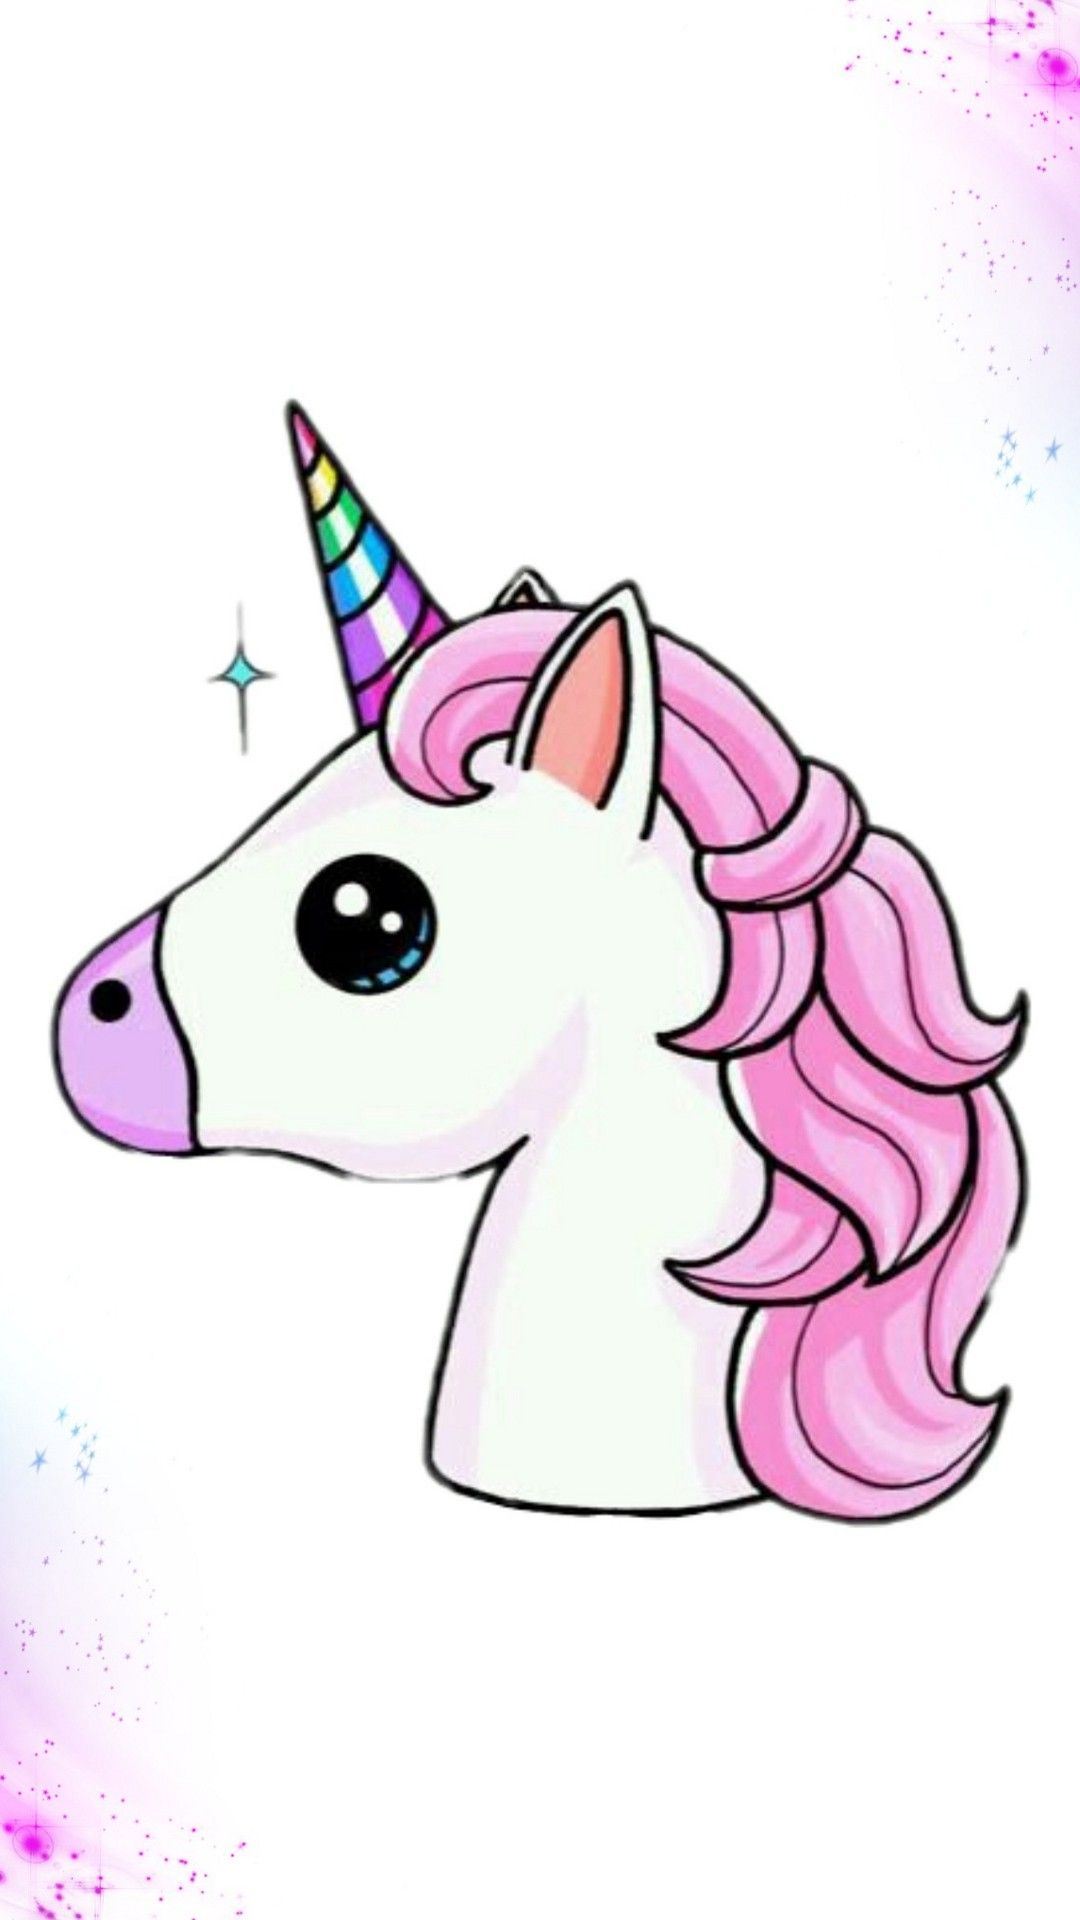 Pin By נוי שלם On Noy With Images Unicorn Wallpaper Cute